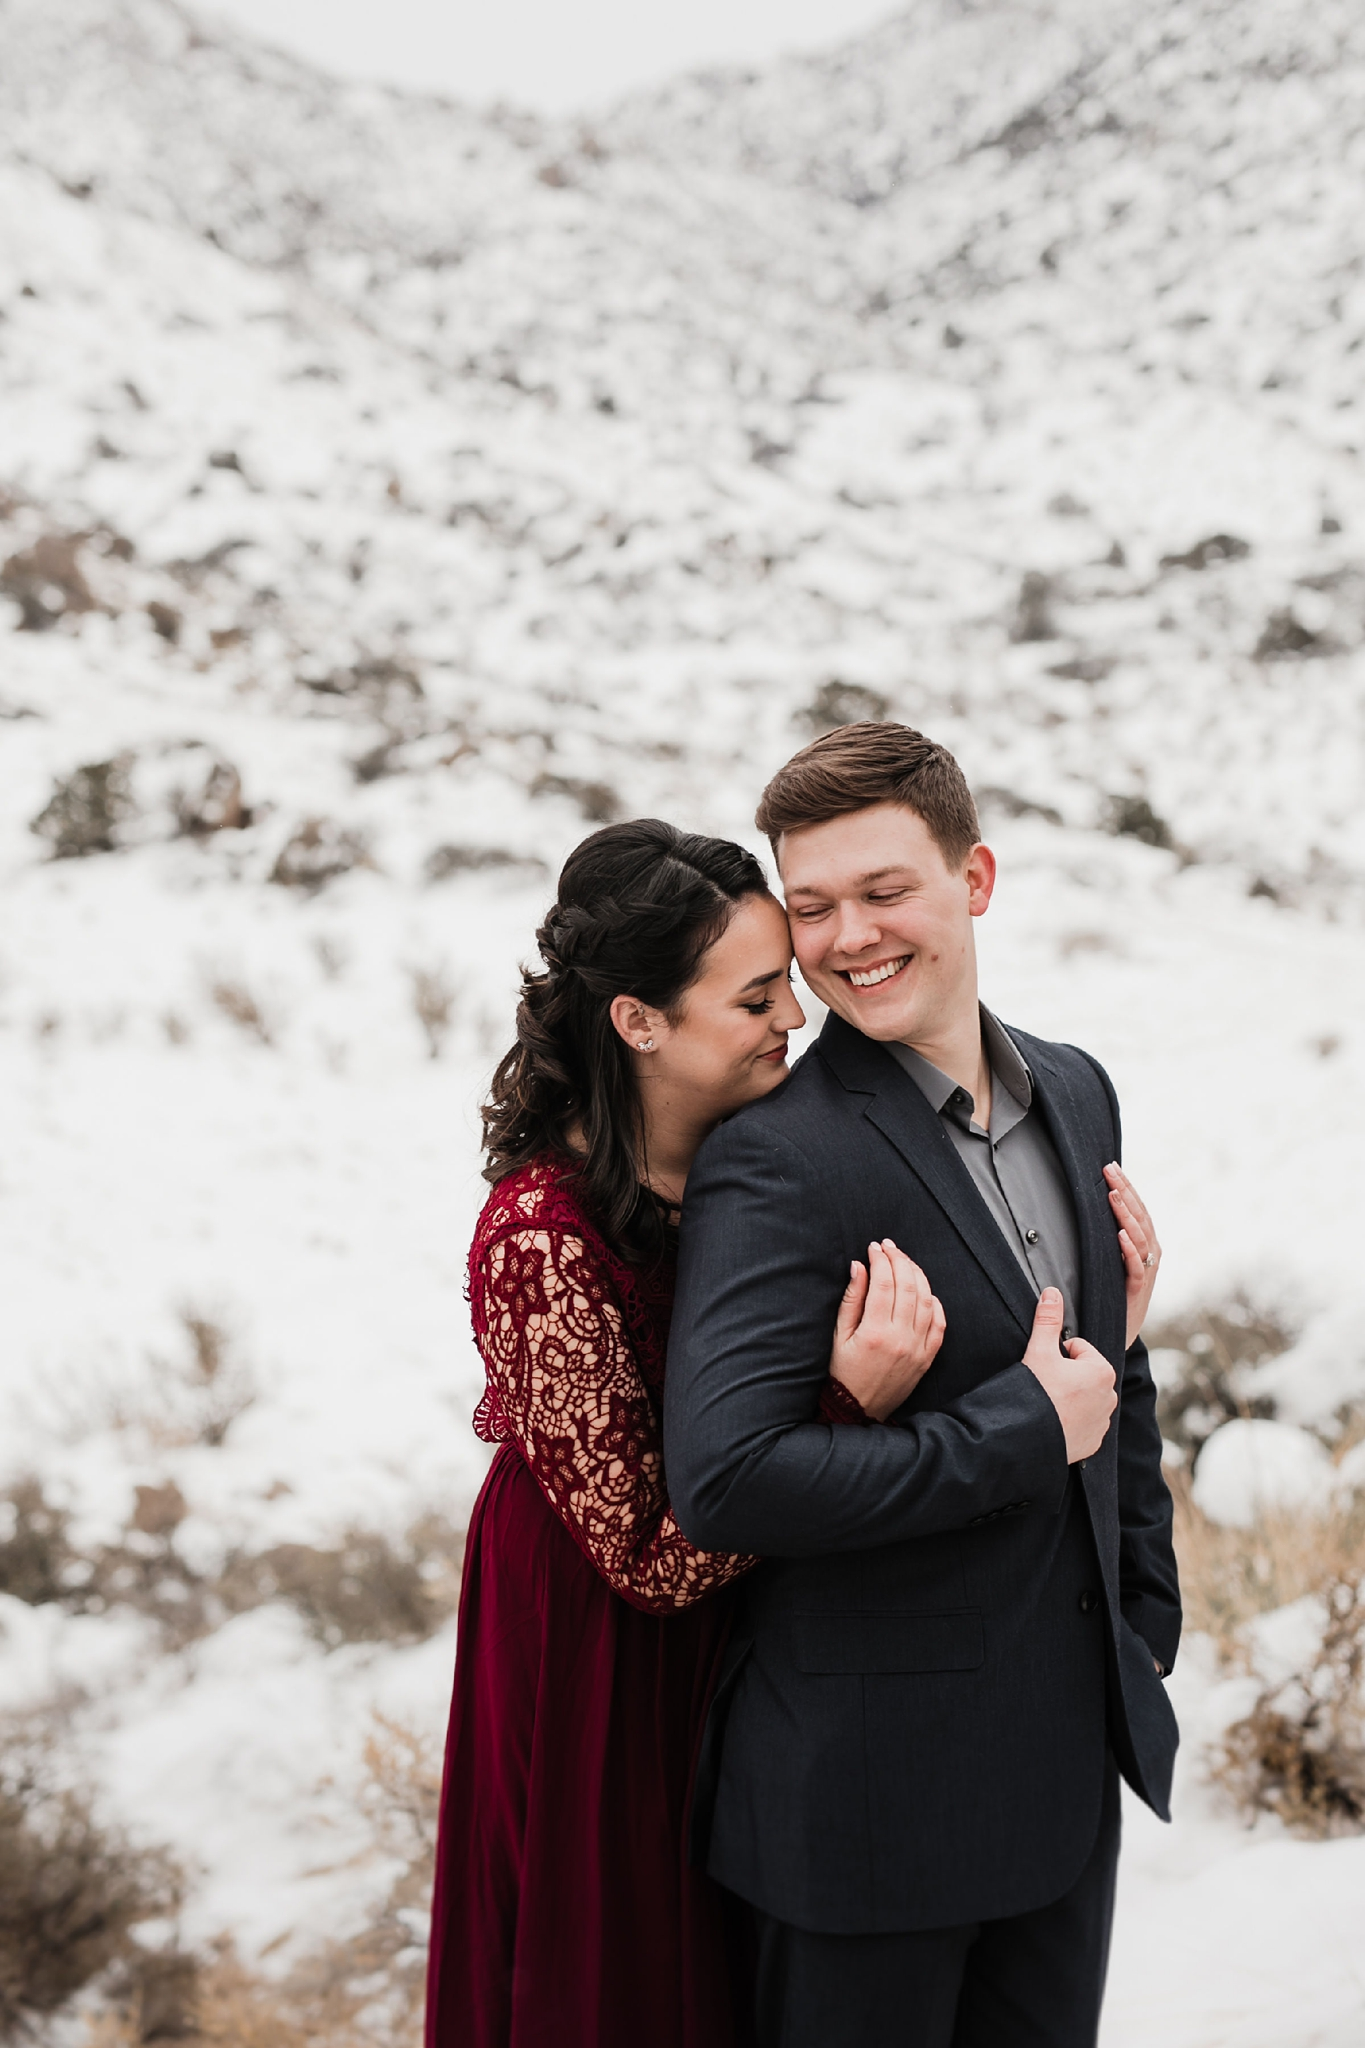 Alicia+lucia+photography+-+albuquerque+wedding+photographer+-+santa+fe+wedding+photography+-+new+mexico+wedding+photographer+-+new+mexico+wedding+-+engagement+-+albuquerque+engagement+-+winter+engagement+-+hyatt+tamaya+wedding_0008.jpg